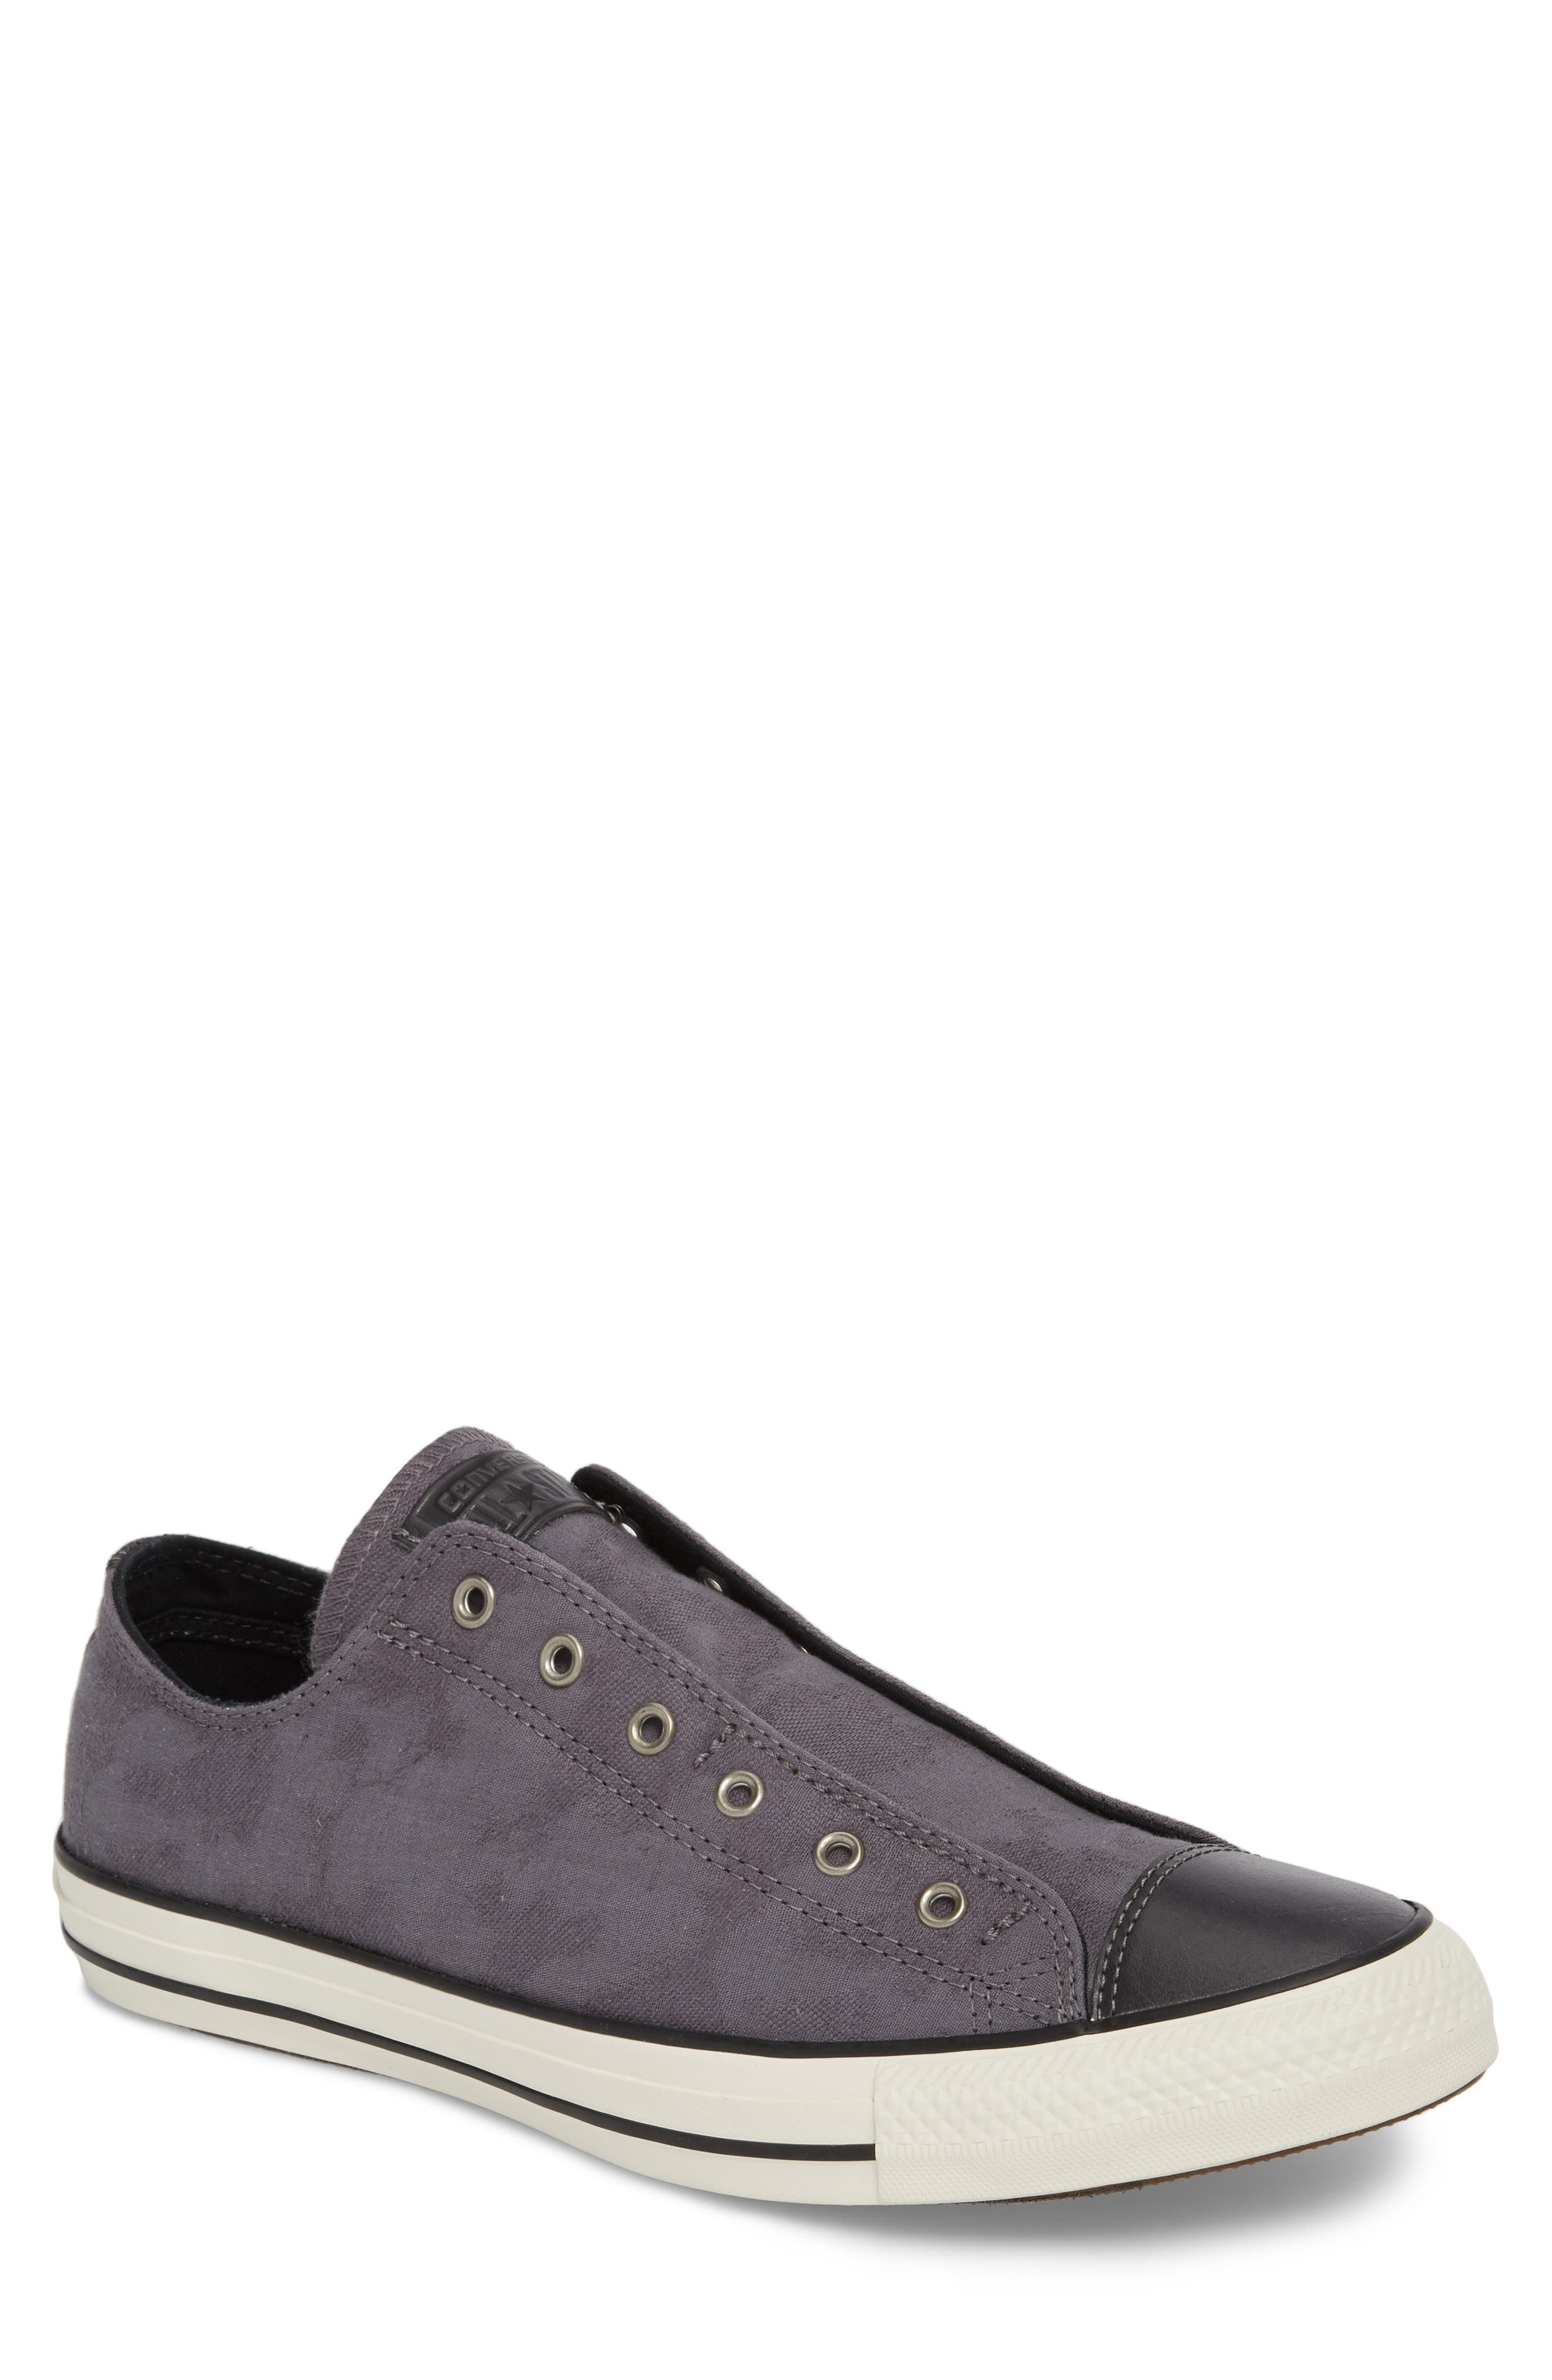 Chuck Taylor<sup>®</sup> All Star<sup>®</sup> Laceless Low Top Sneaker,                         Main,                         color, THUNDER